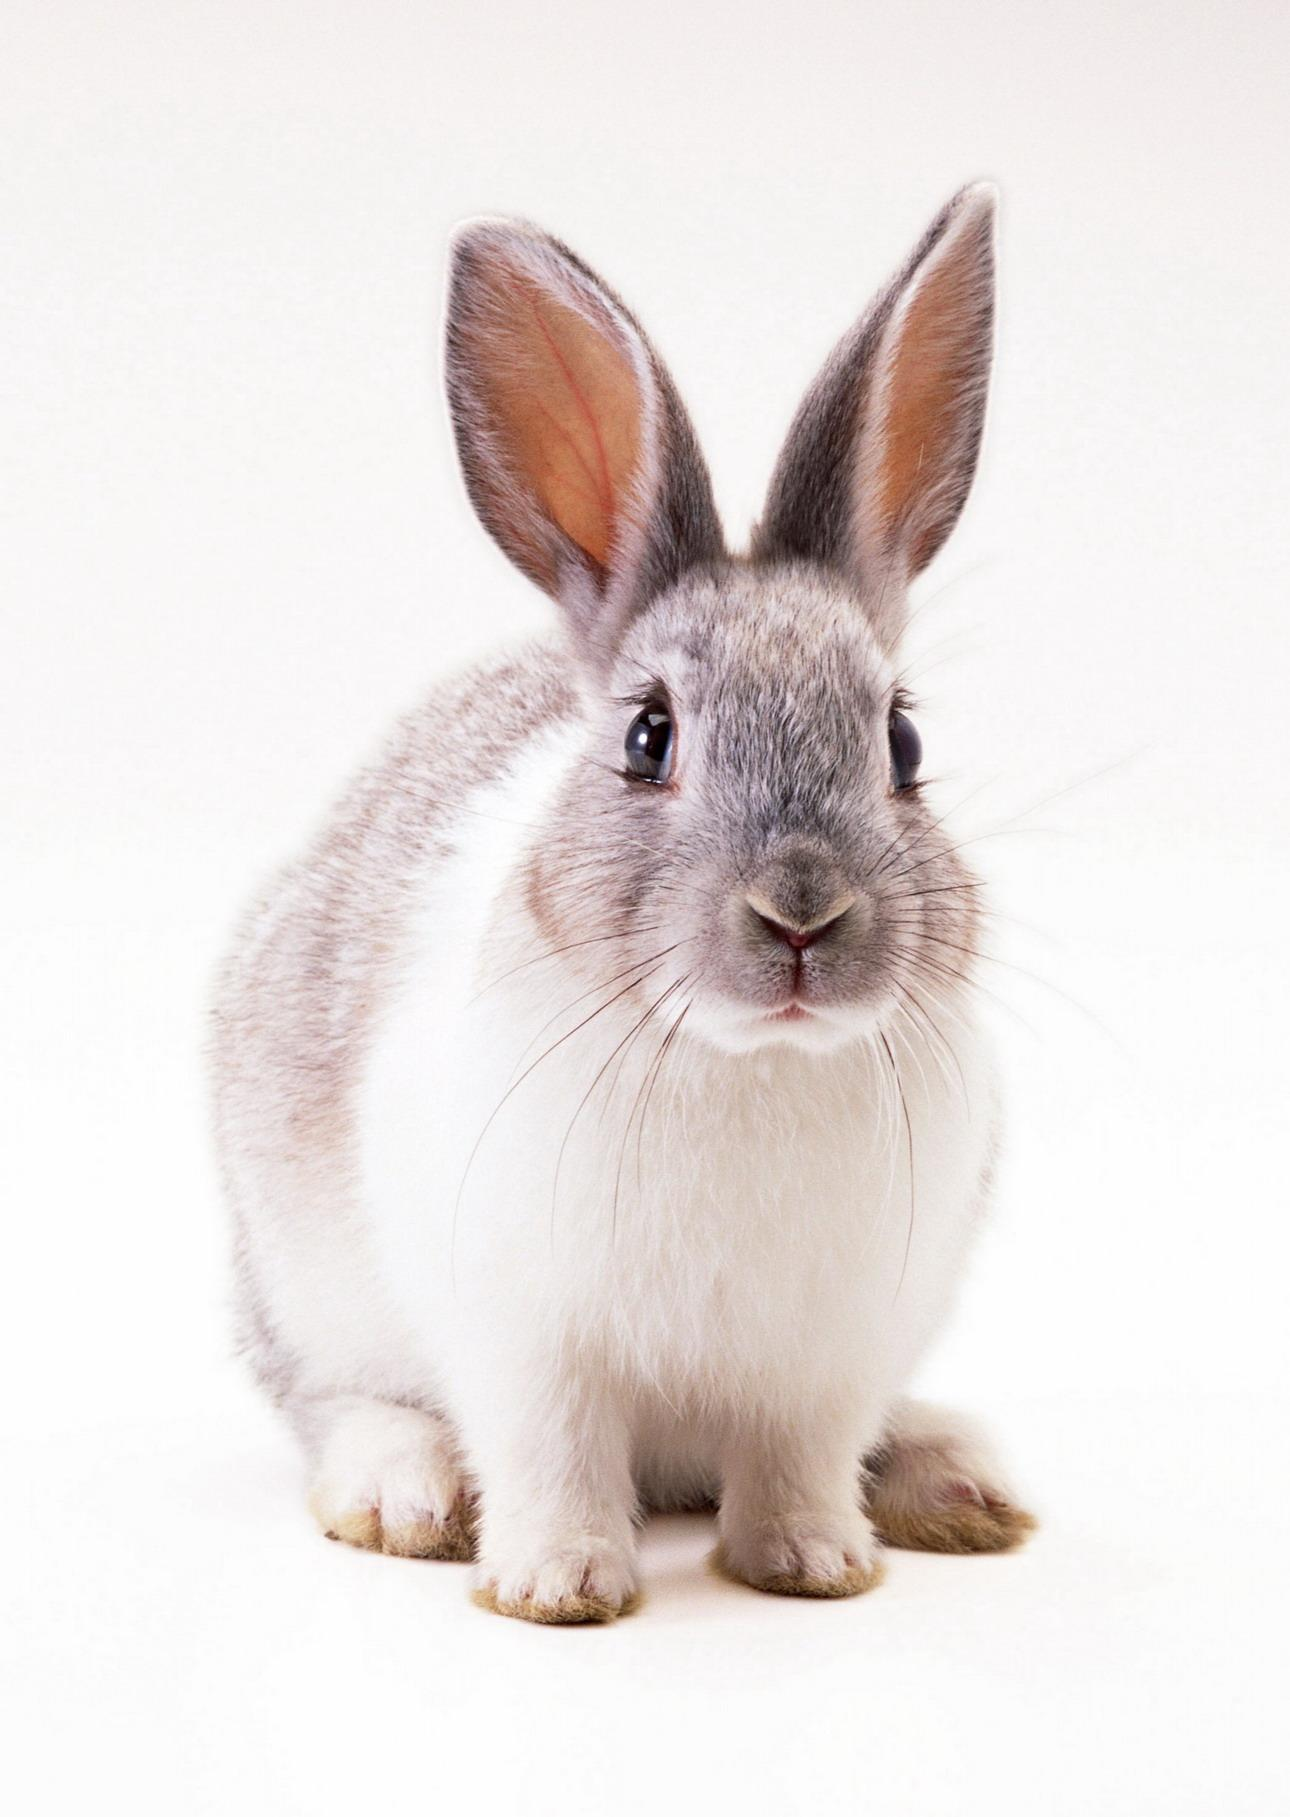 10761 Screensavers and Wallpapers Rabbits for phone. Download Animals, Rodents, Rabbits pictures for free